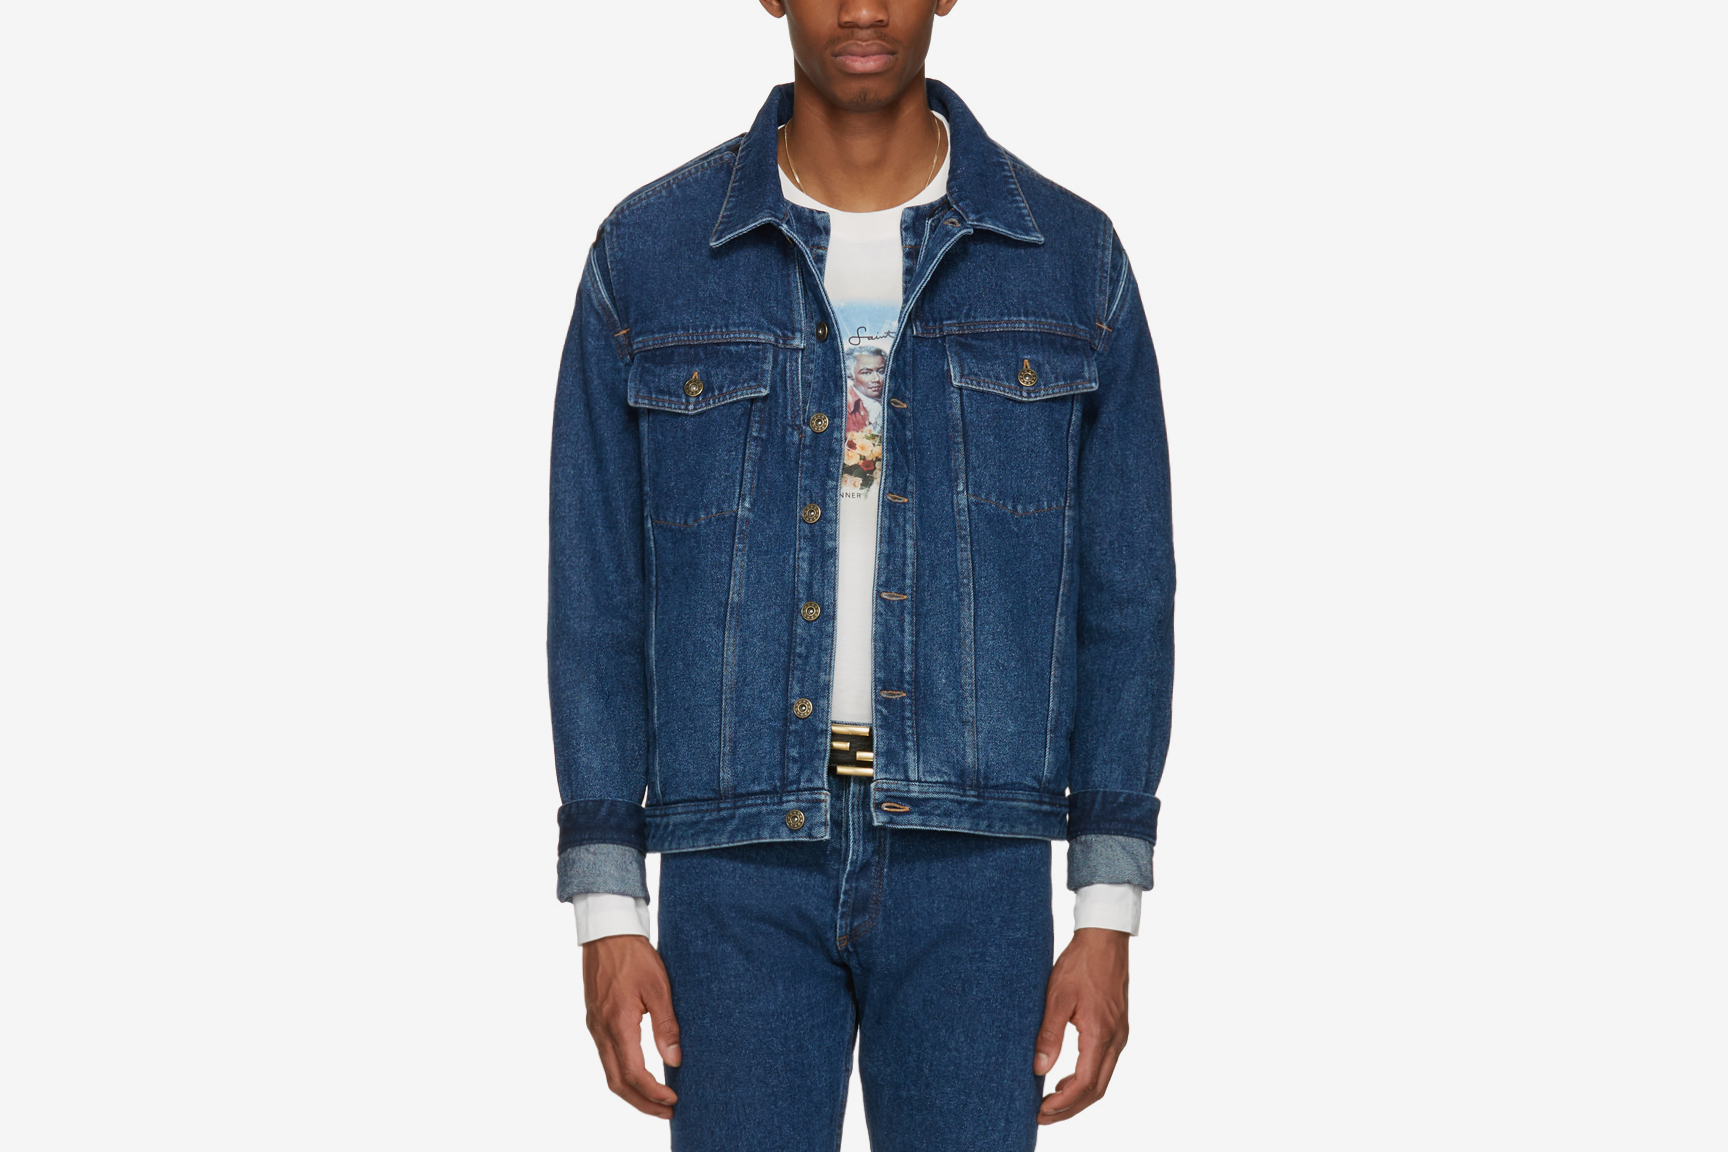 Y/Project Denim Cut-Out Jacket | What Drops Now